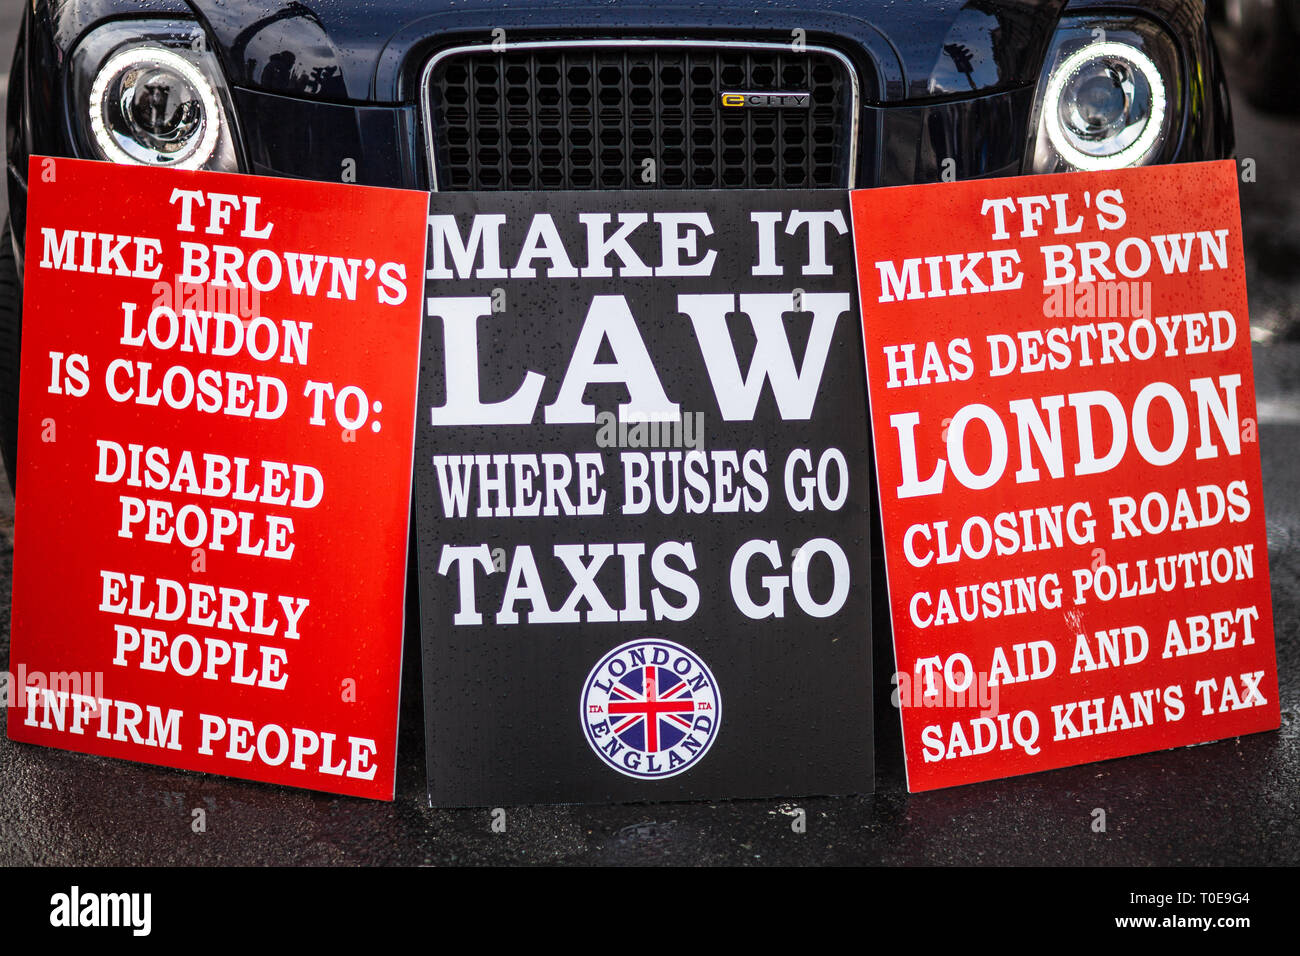 London Taxi Dispute - Taxi Drivers Protest against changes closing certain roads to London Taxis, changes proposed by Transport for London TFL - Stock Image